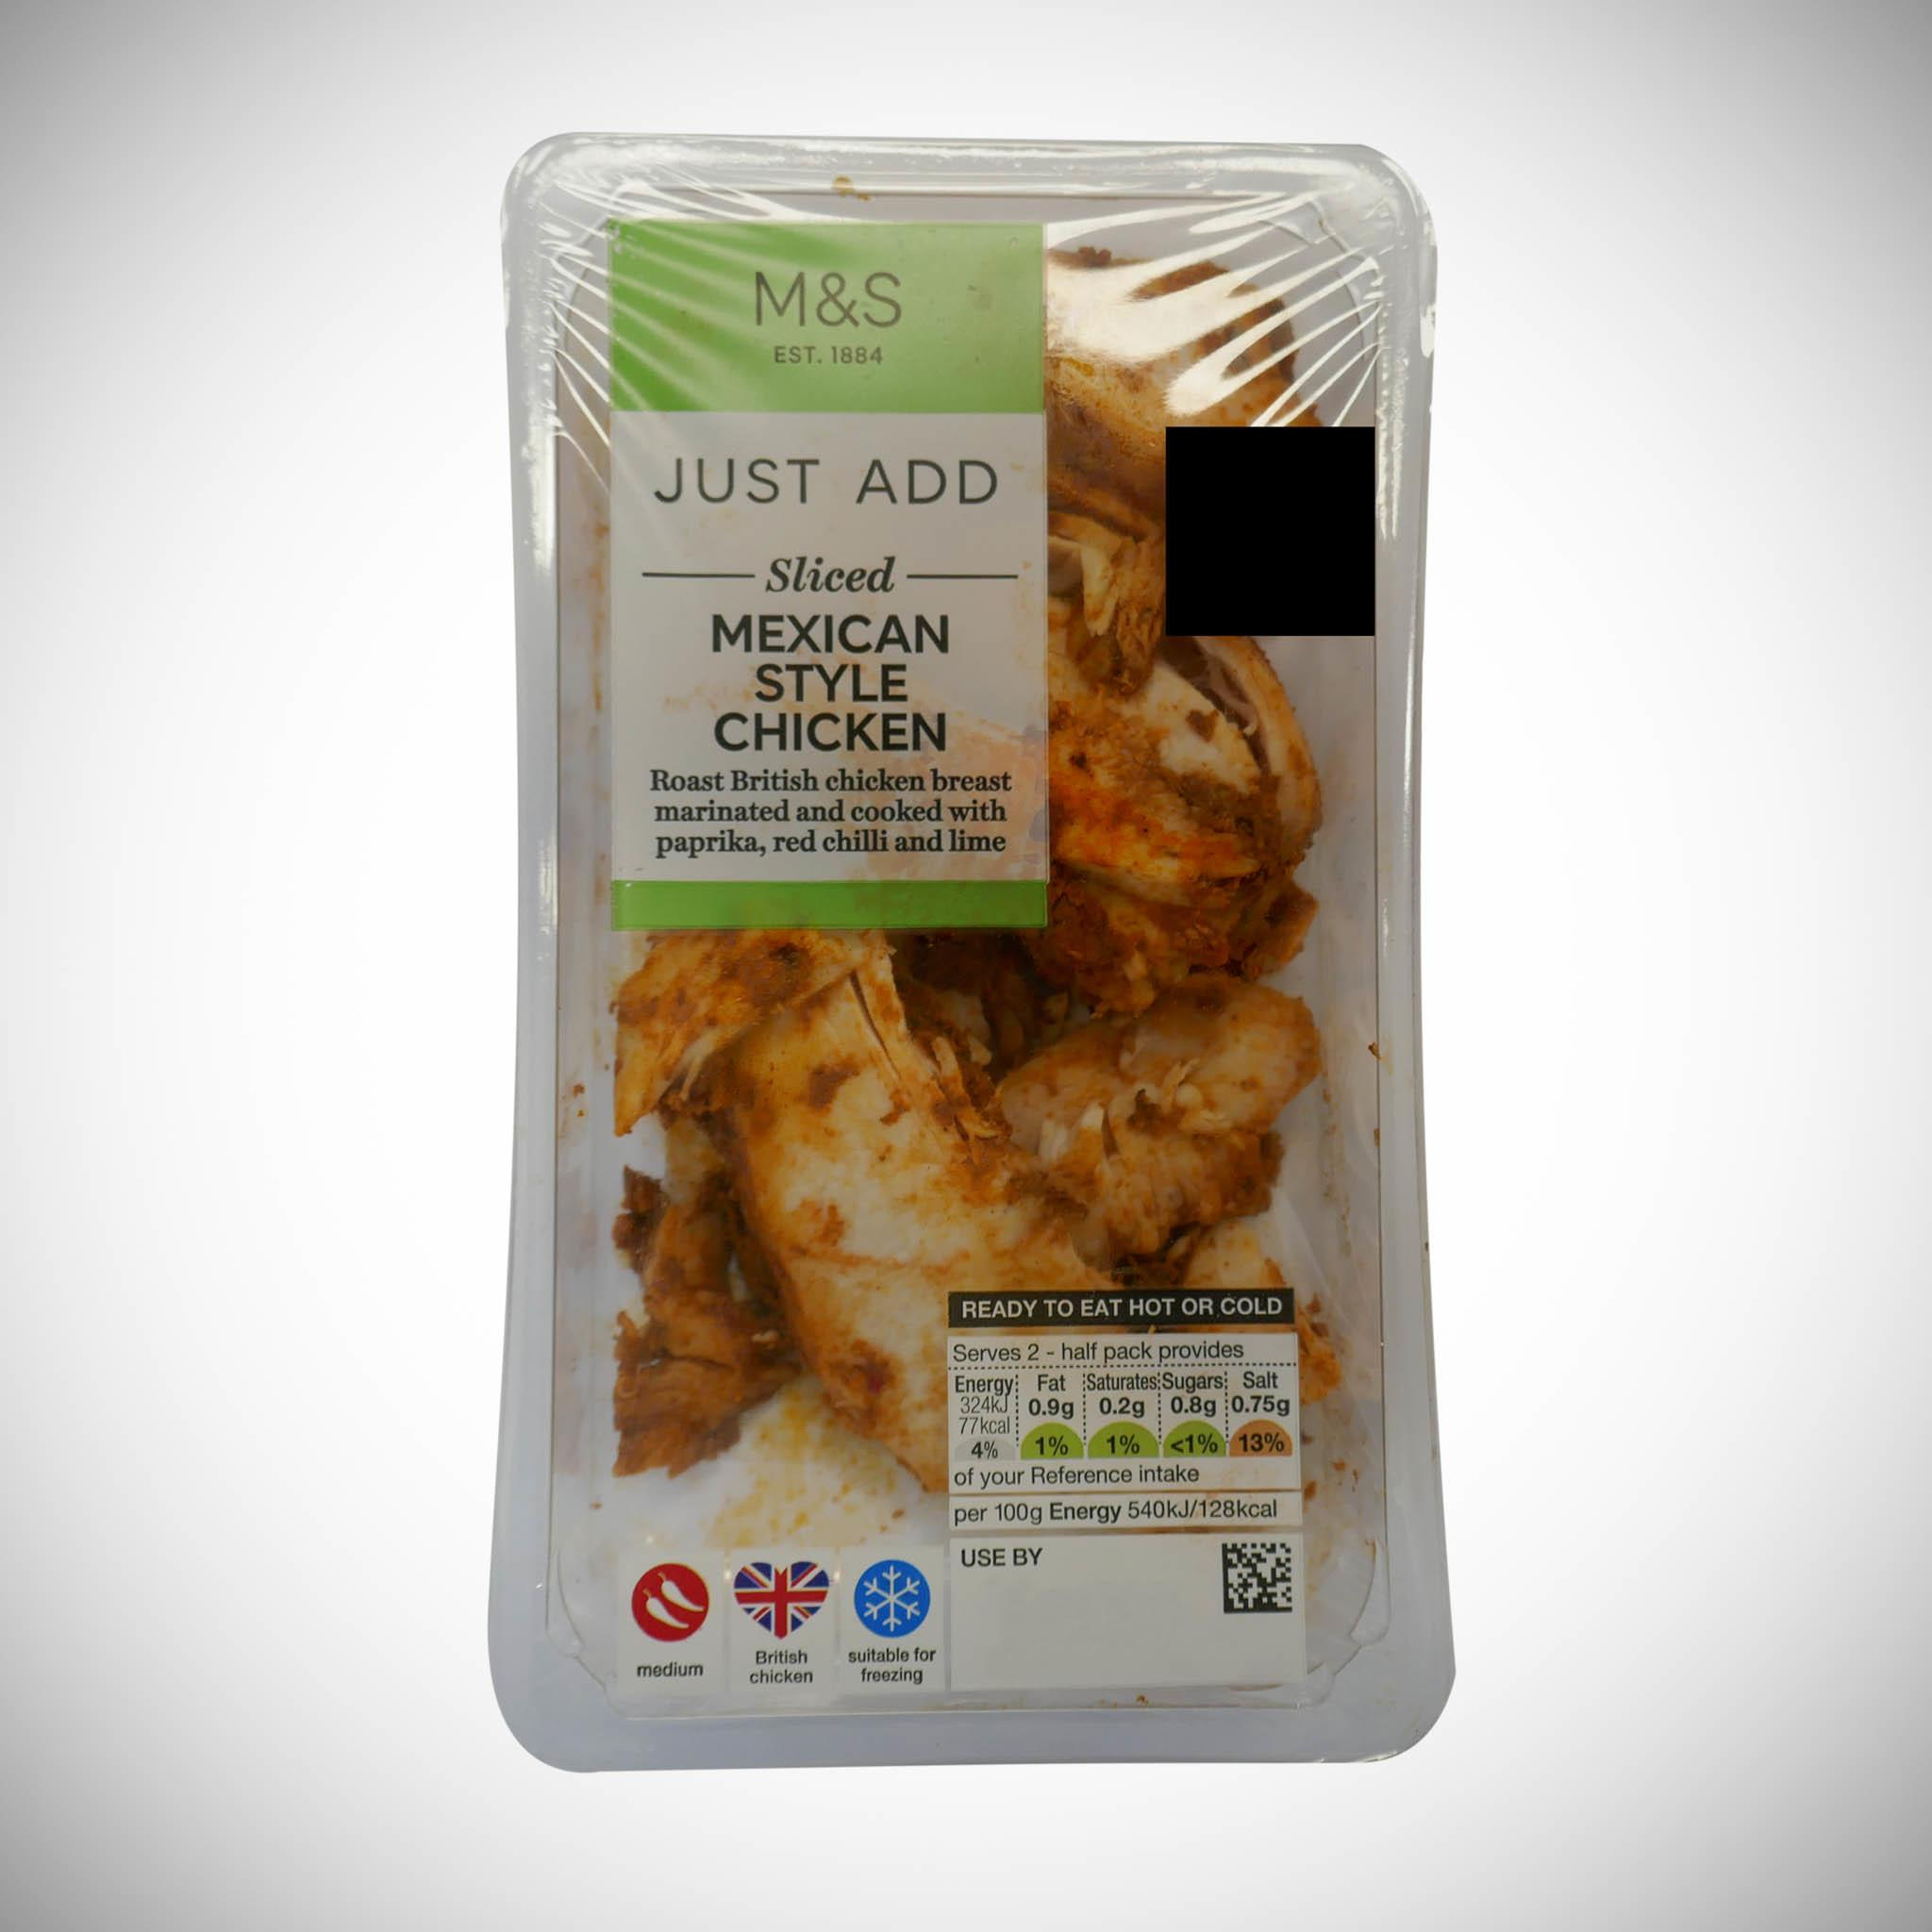 Just Add Sliced Mexican Chilli Chicken